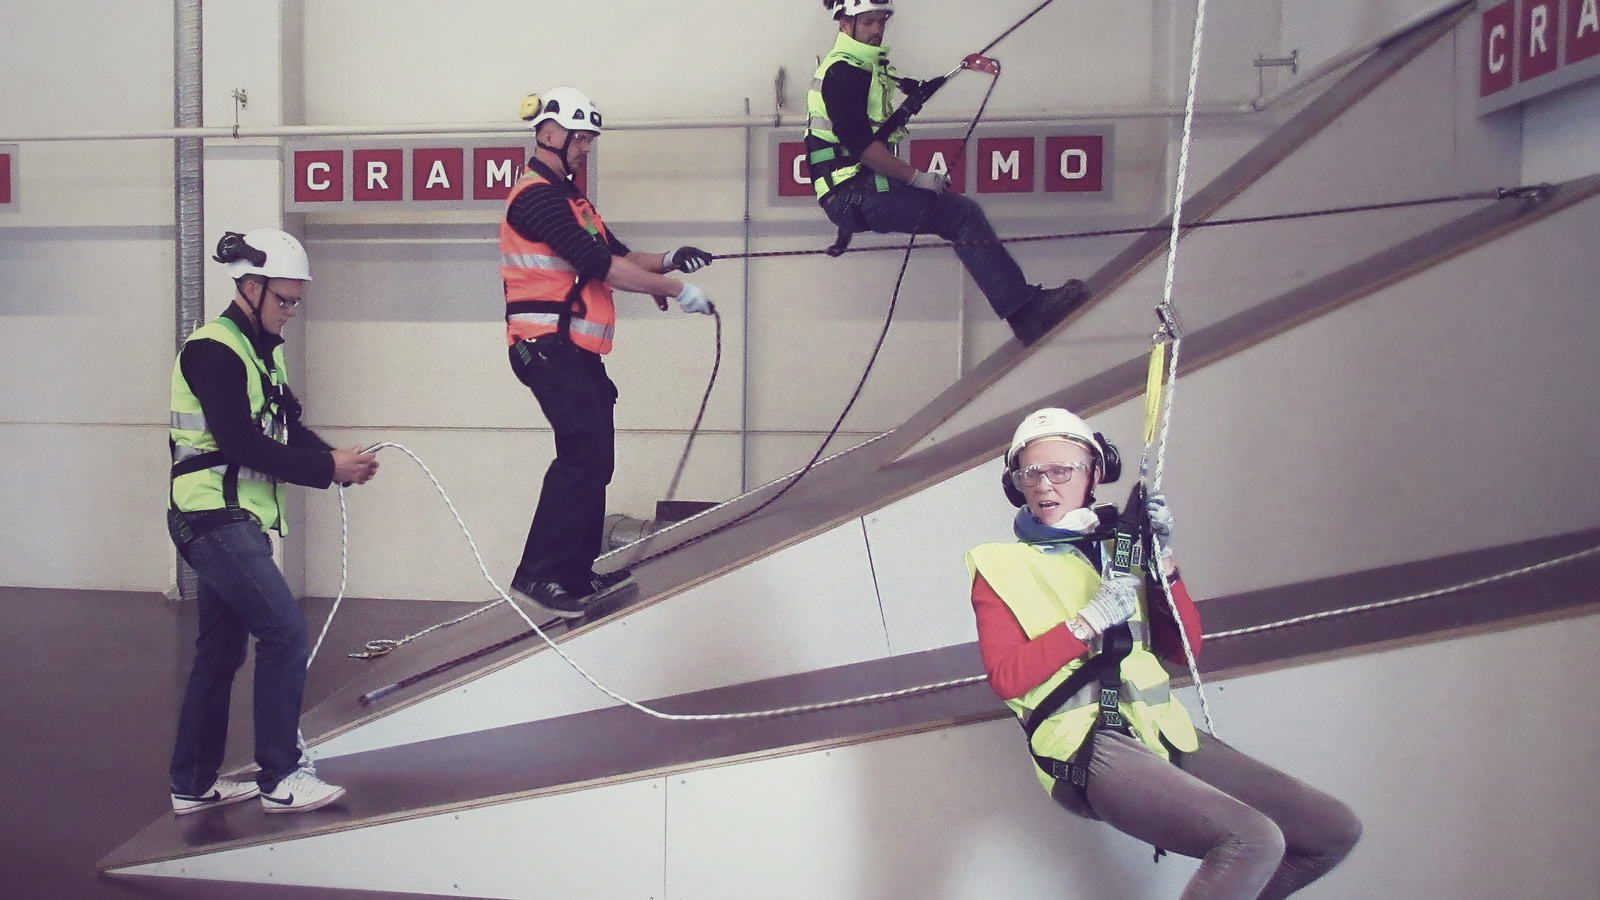 cramo_safety_testemonial_1_filtered.jpg